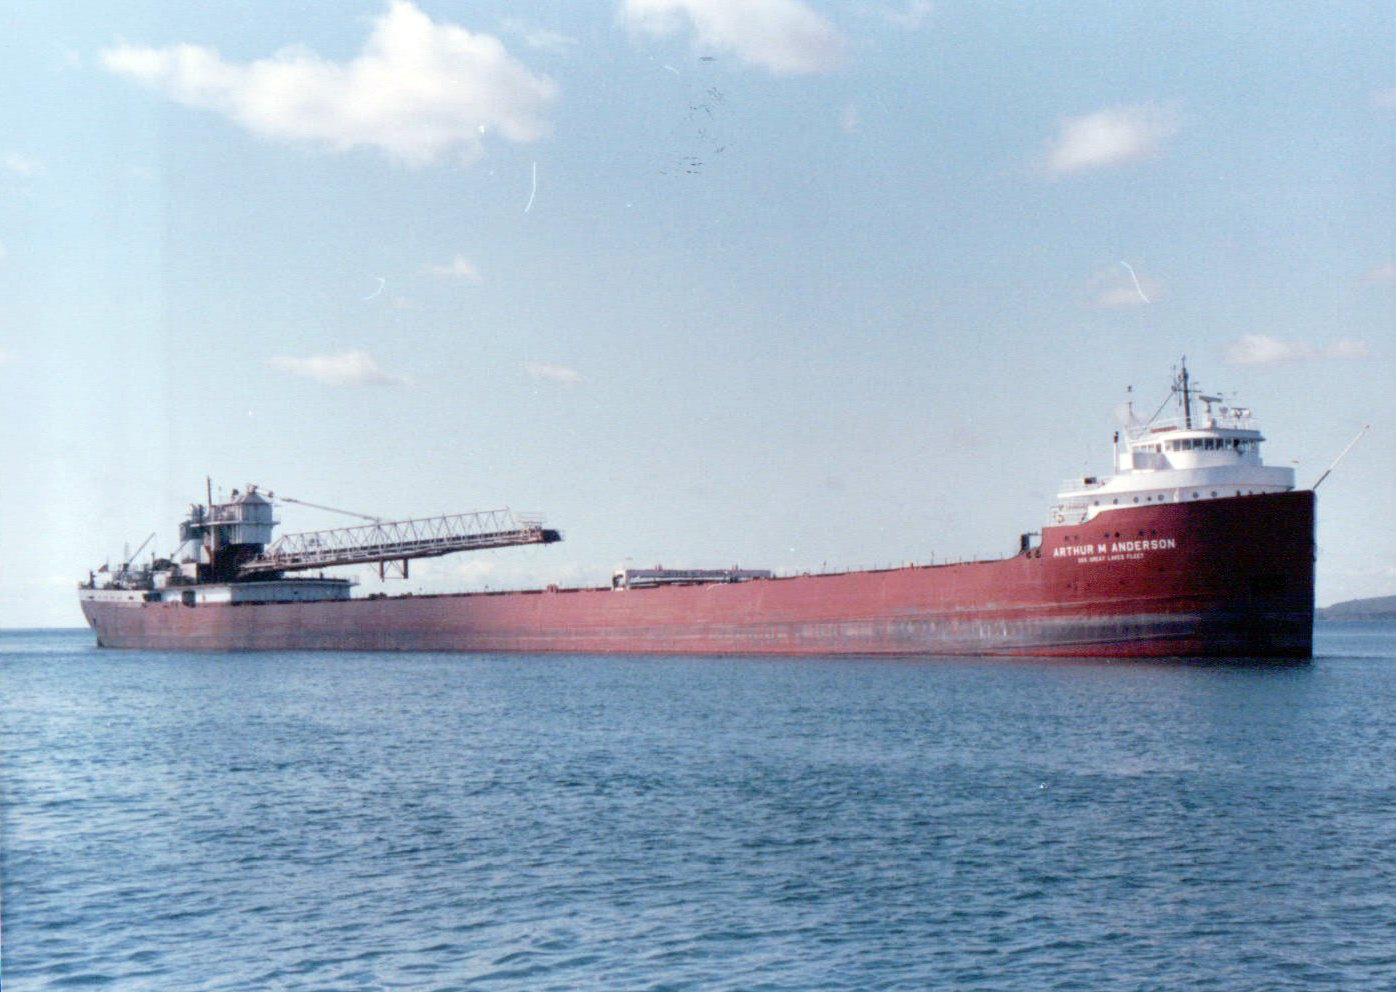 The_SS_Arthur_M._Anderson_in_Two_Harbors_Sep_1988_(4505017793).jpg